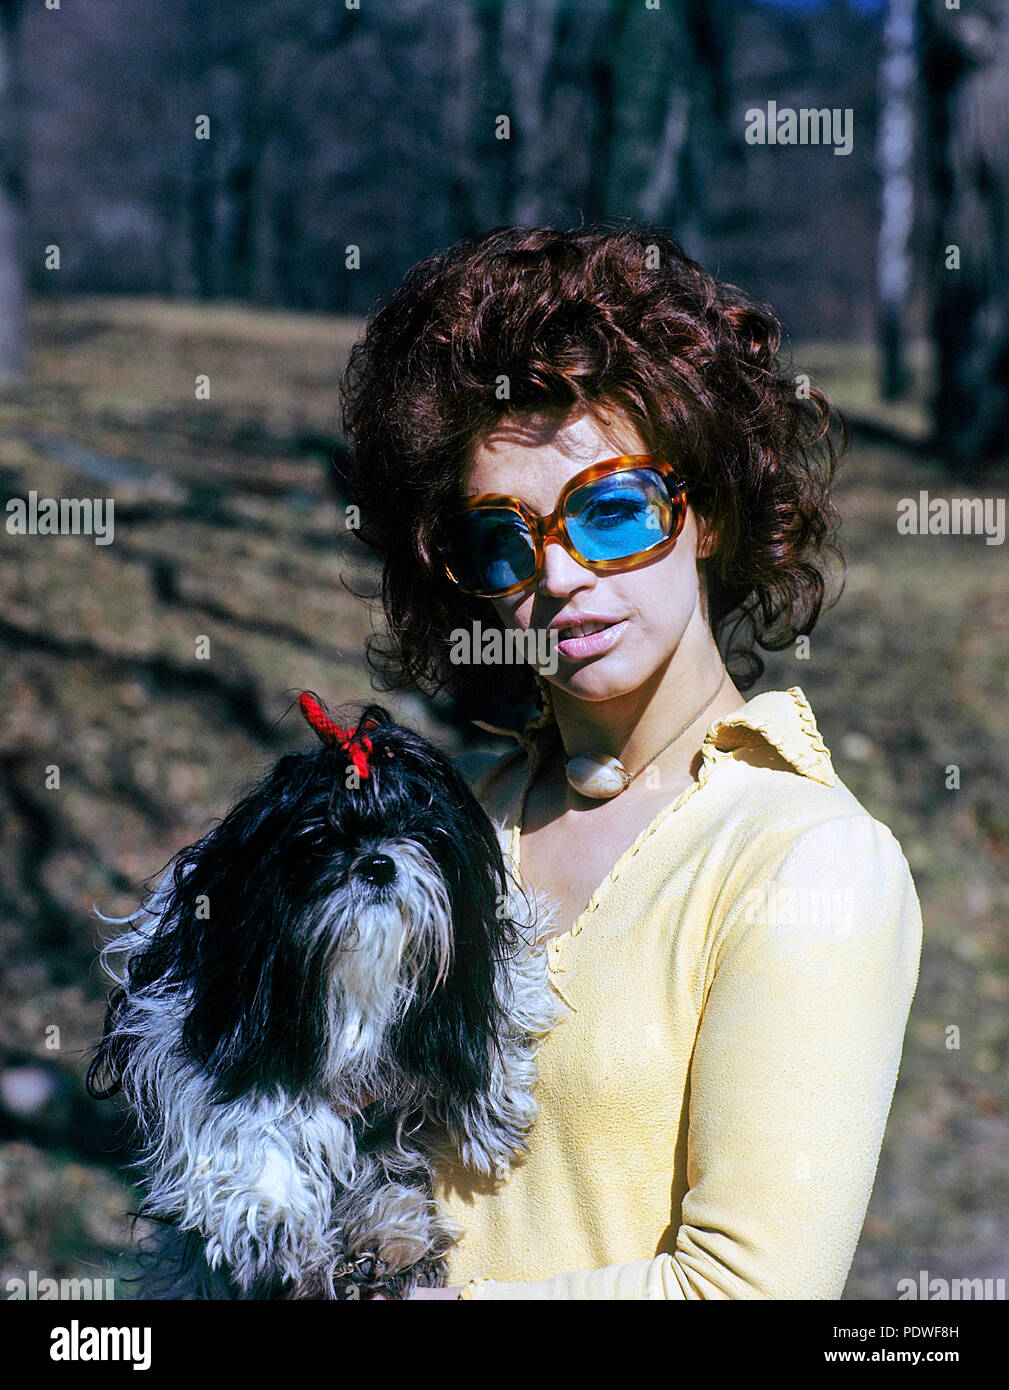 1970s glasses. A young woman in blue tainted sunglasses is holding her dog. 1971 - Stock Image